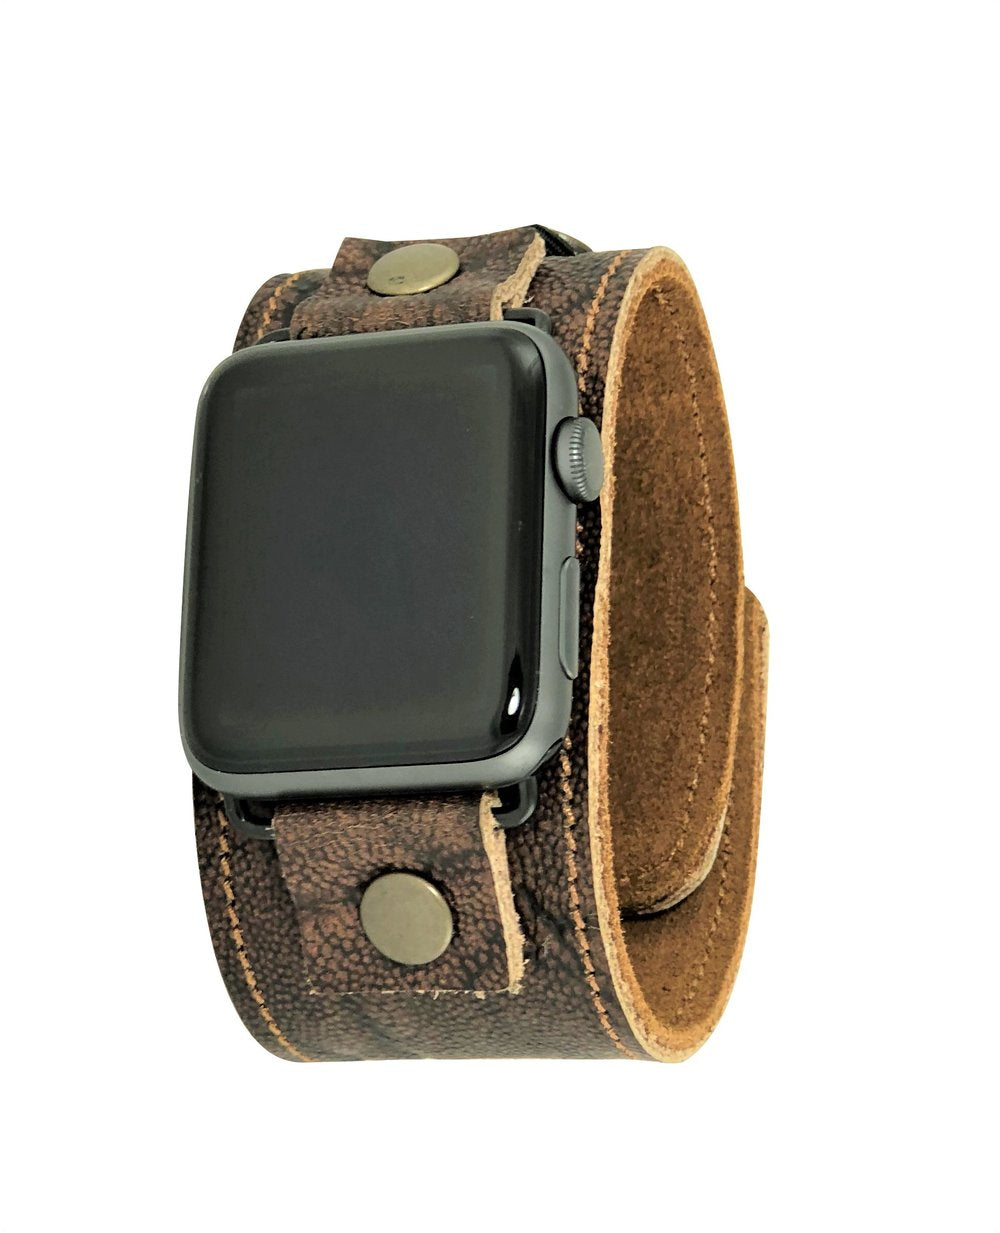 NAN Smart Watch Band - Brown